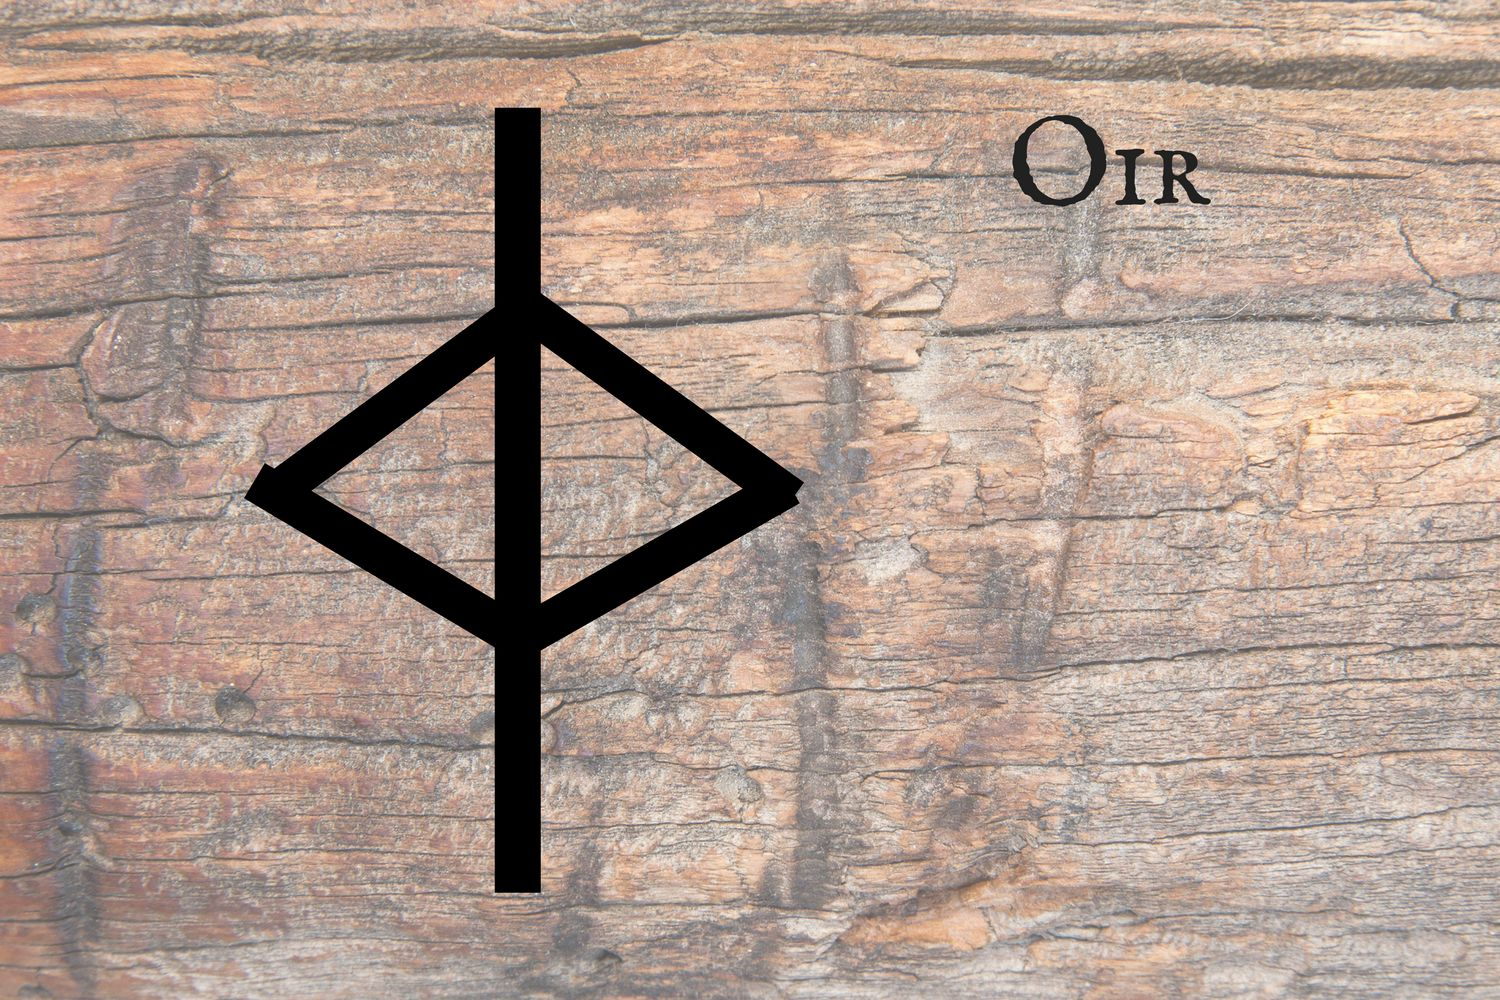 Celtic Ogham Symbols And Their Meanings